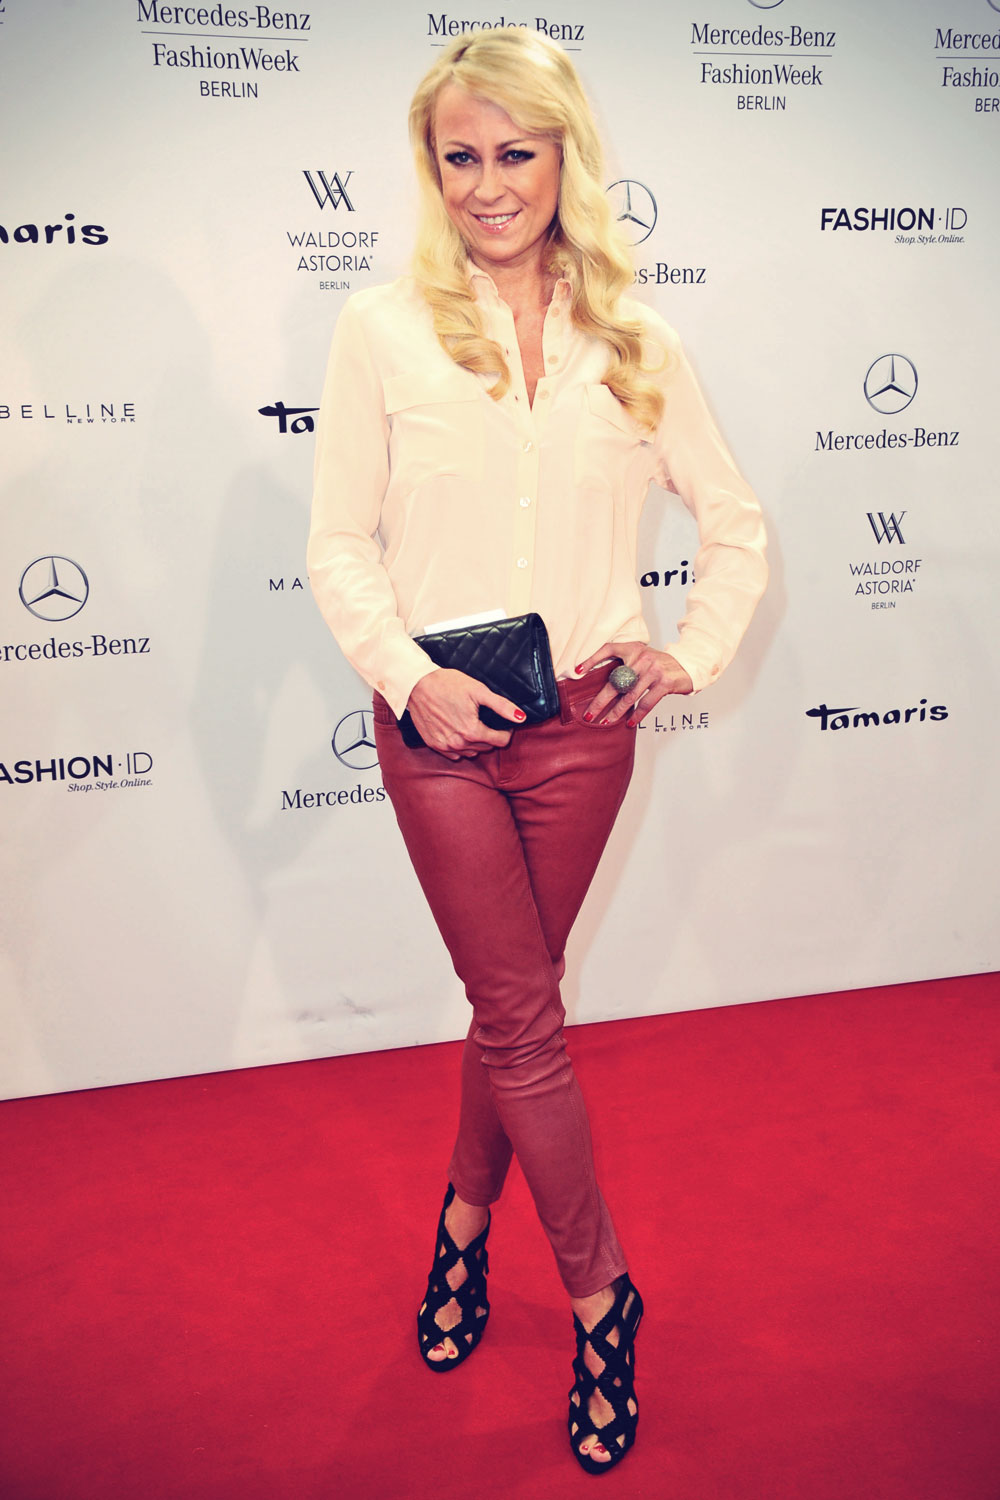 Jenny Elvers Elbertzhagen attends Mercedes-Benz Fashion Week